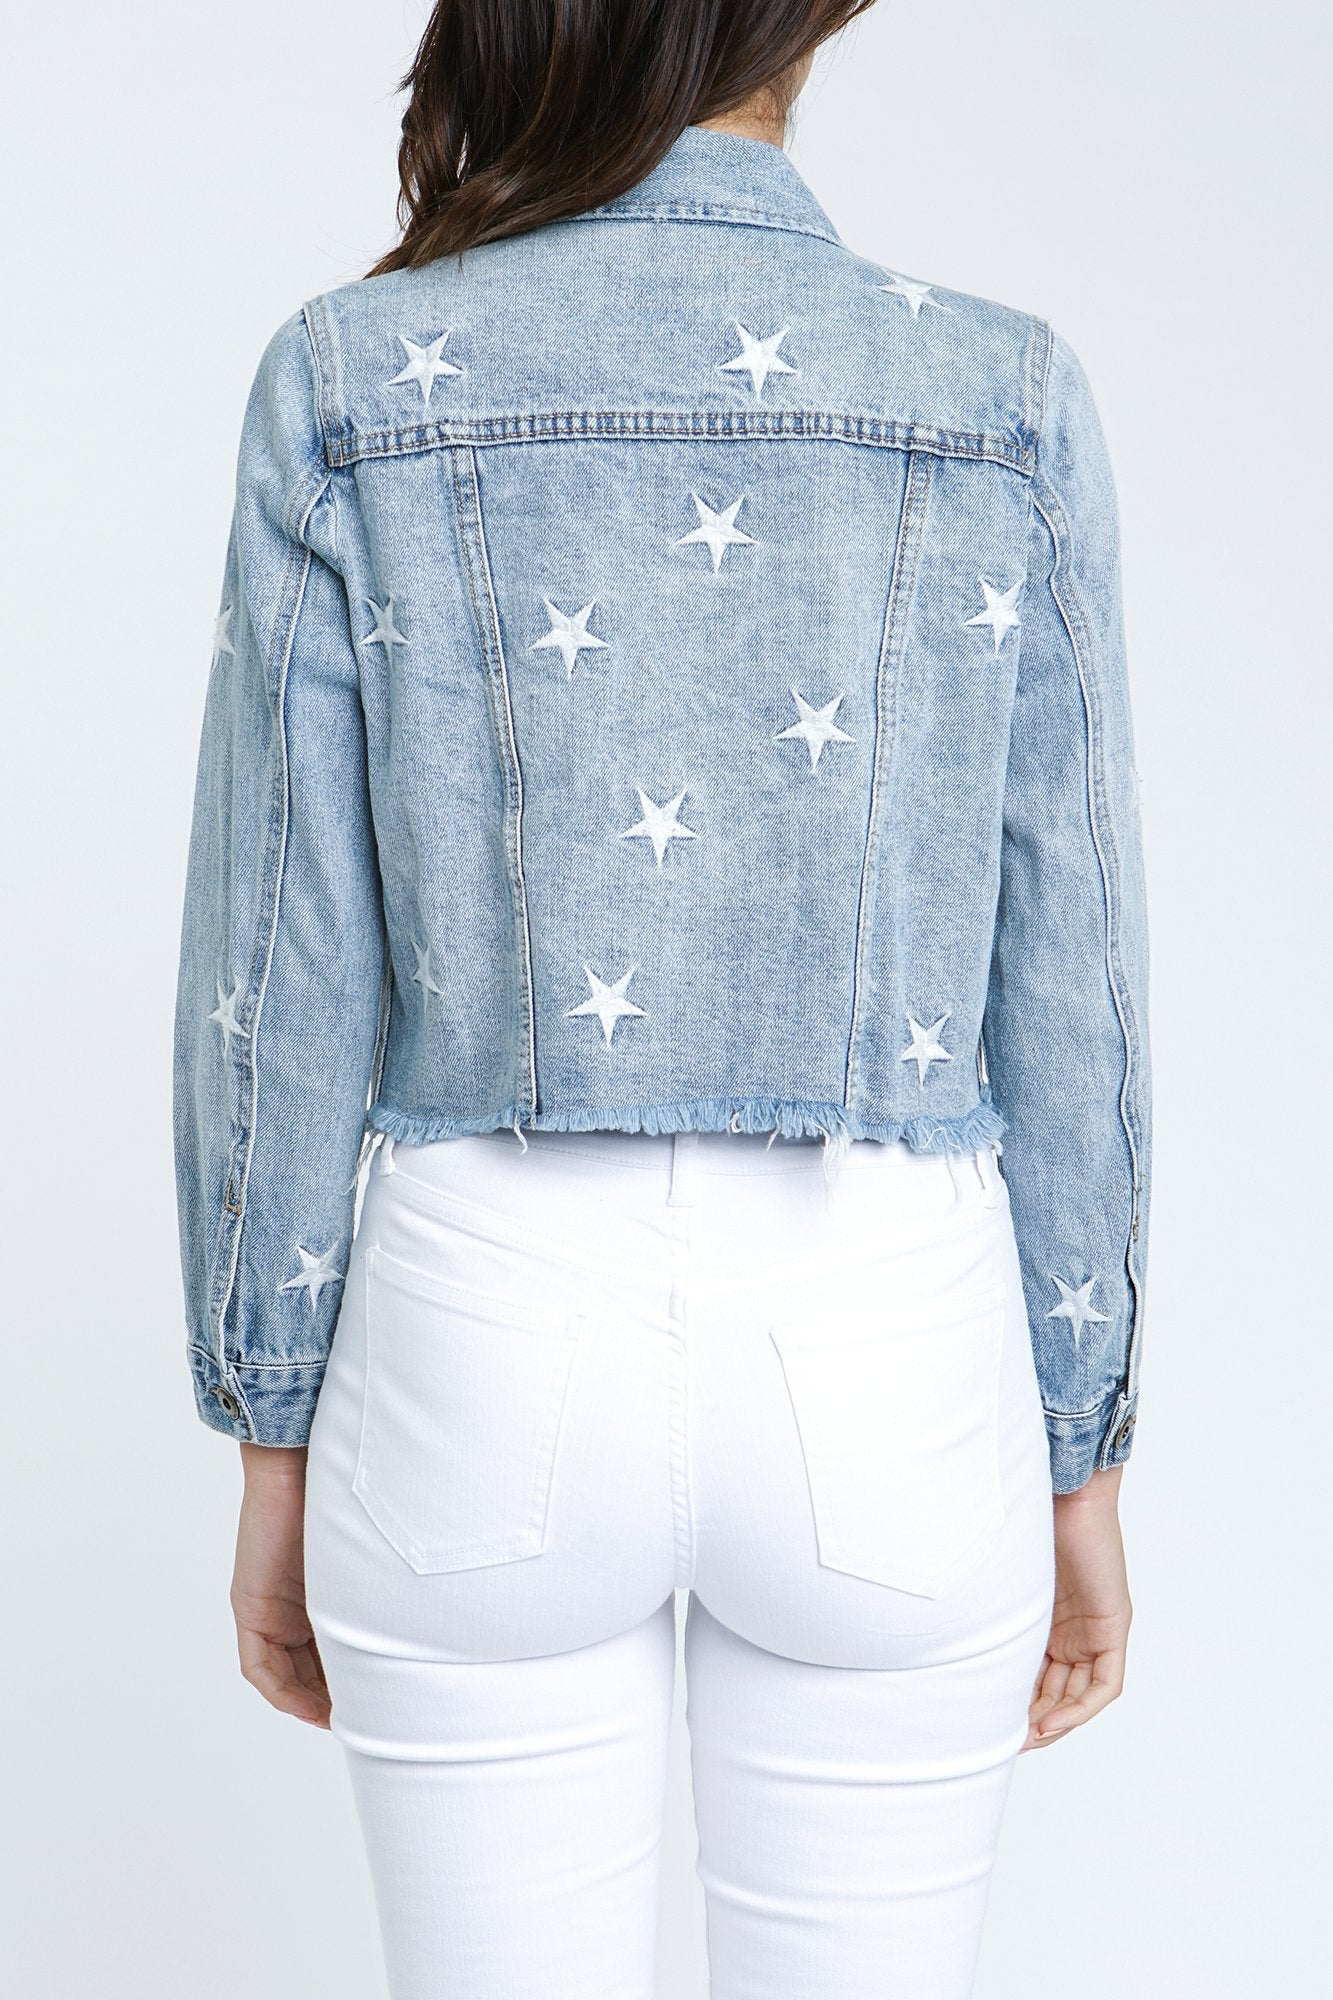 Bando Cropped Denim Jacket - Hello Addie